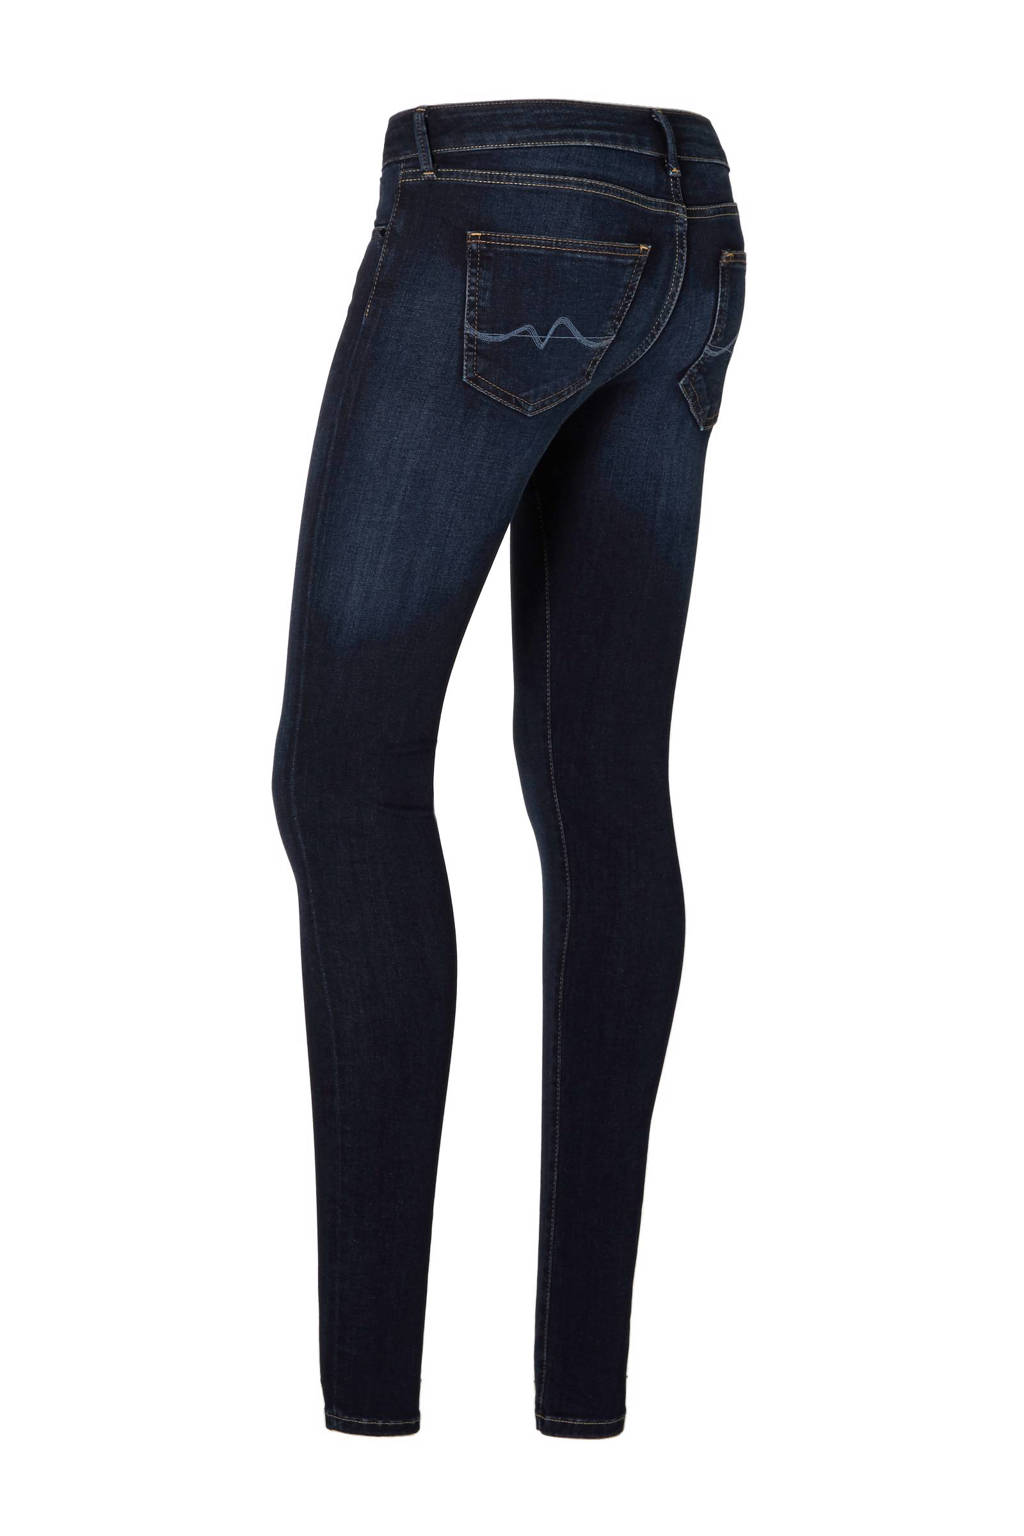 Pixie Skinny Fit Pixie Jeans Skinny Pepe Fit Pepe Jeans Pepe vUxwqdx